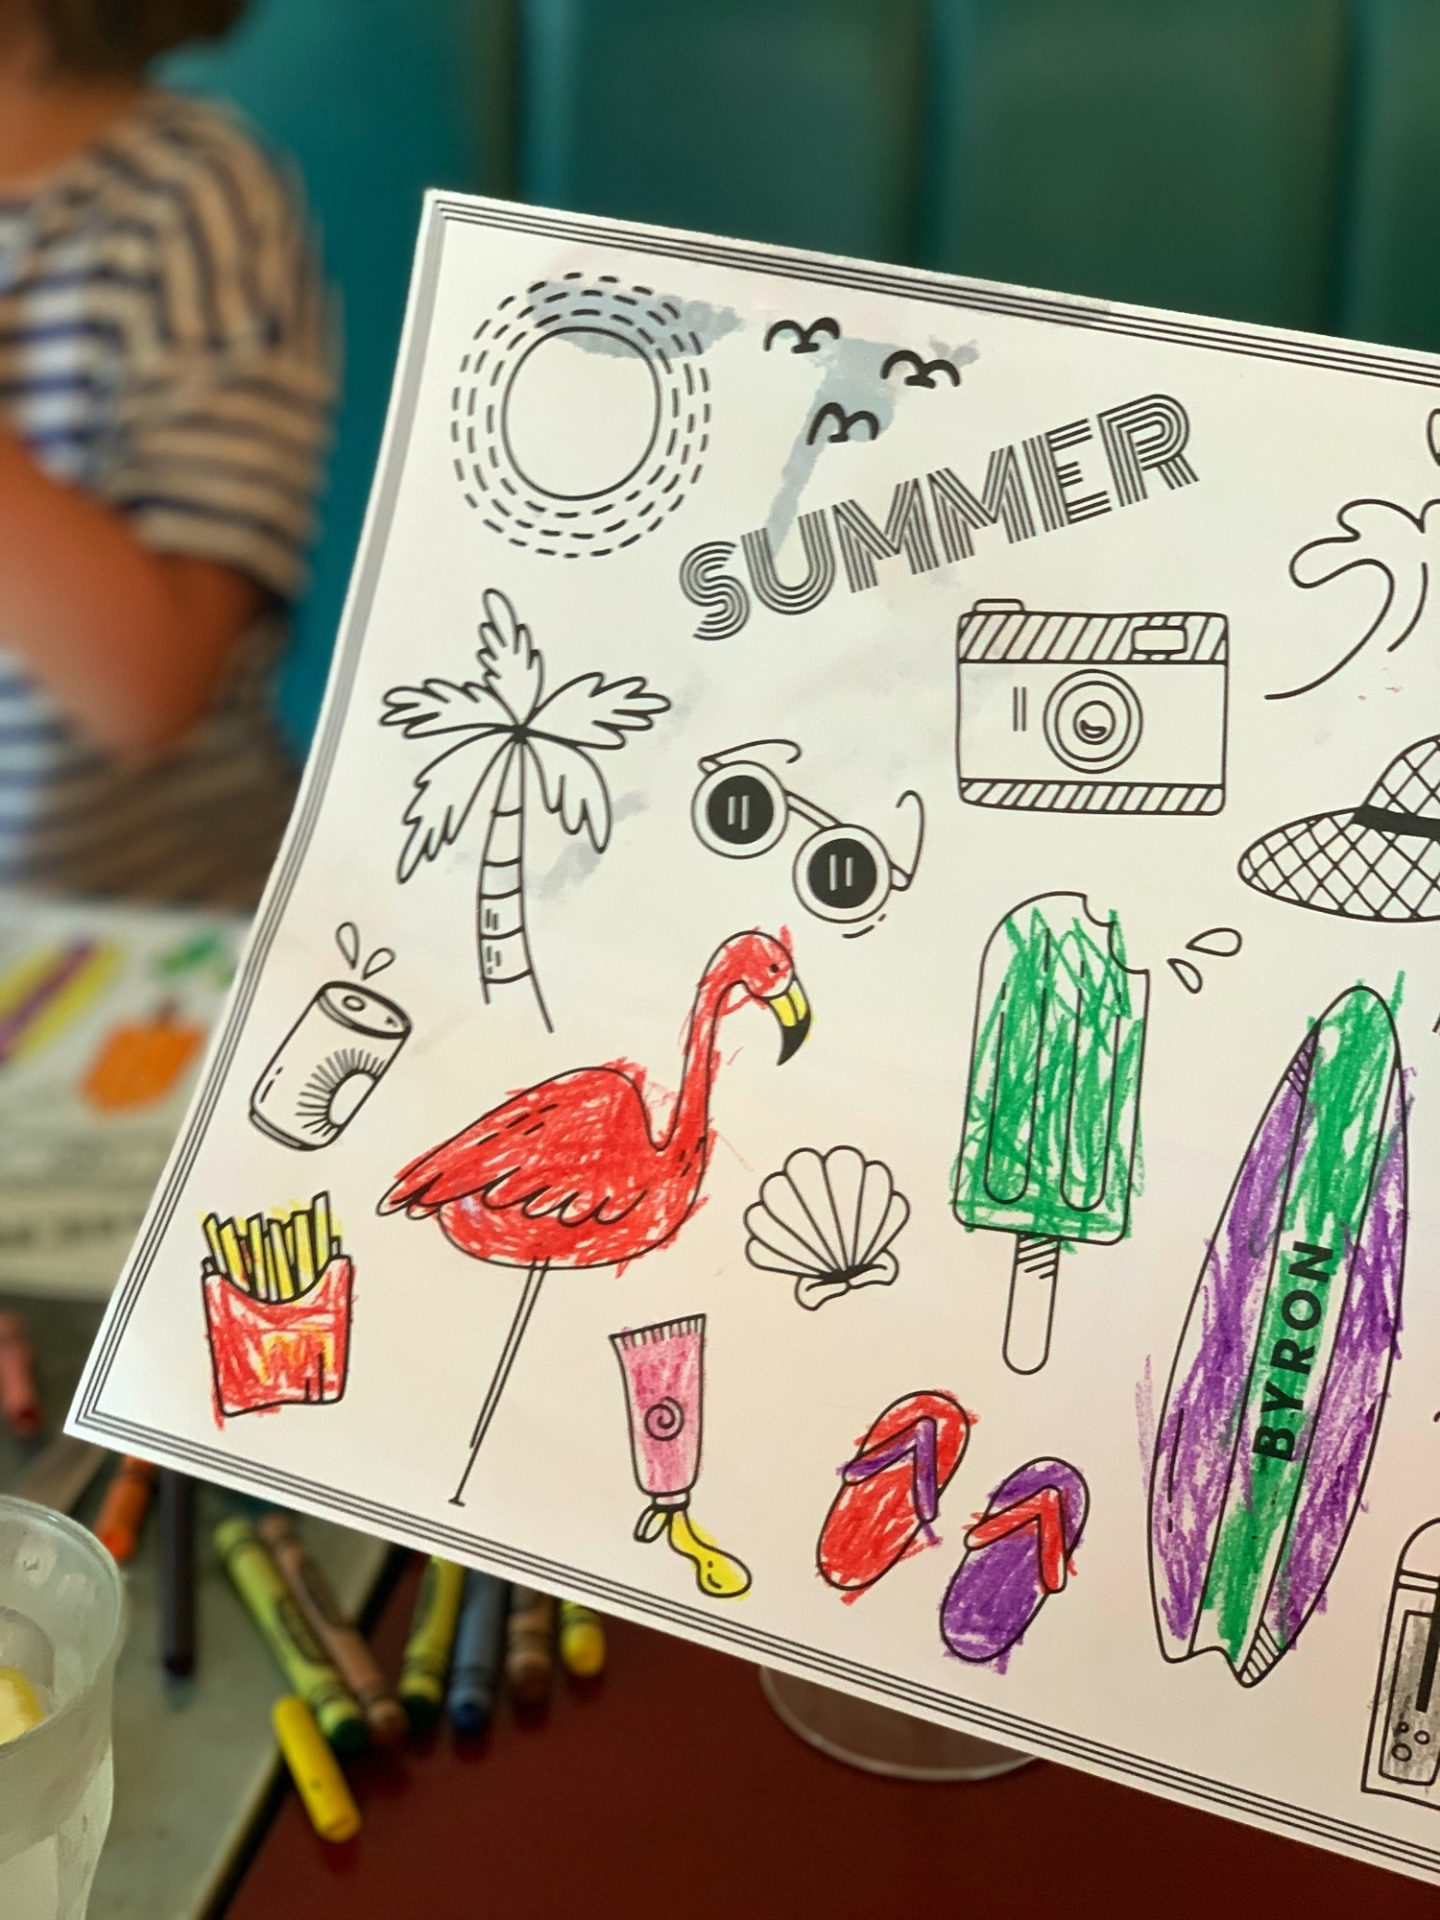 Summer at Byron hamburgers - childrens menu